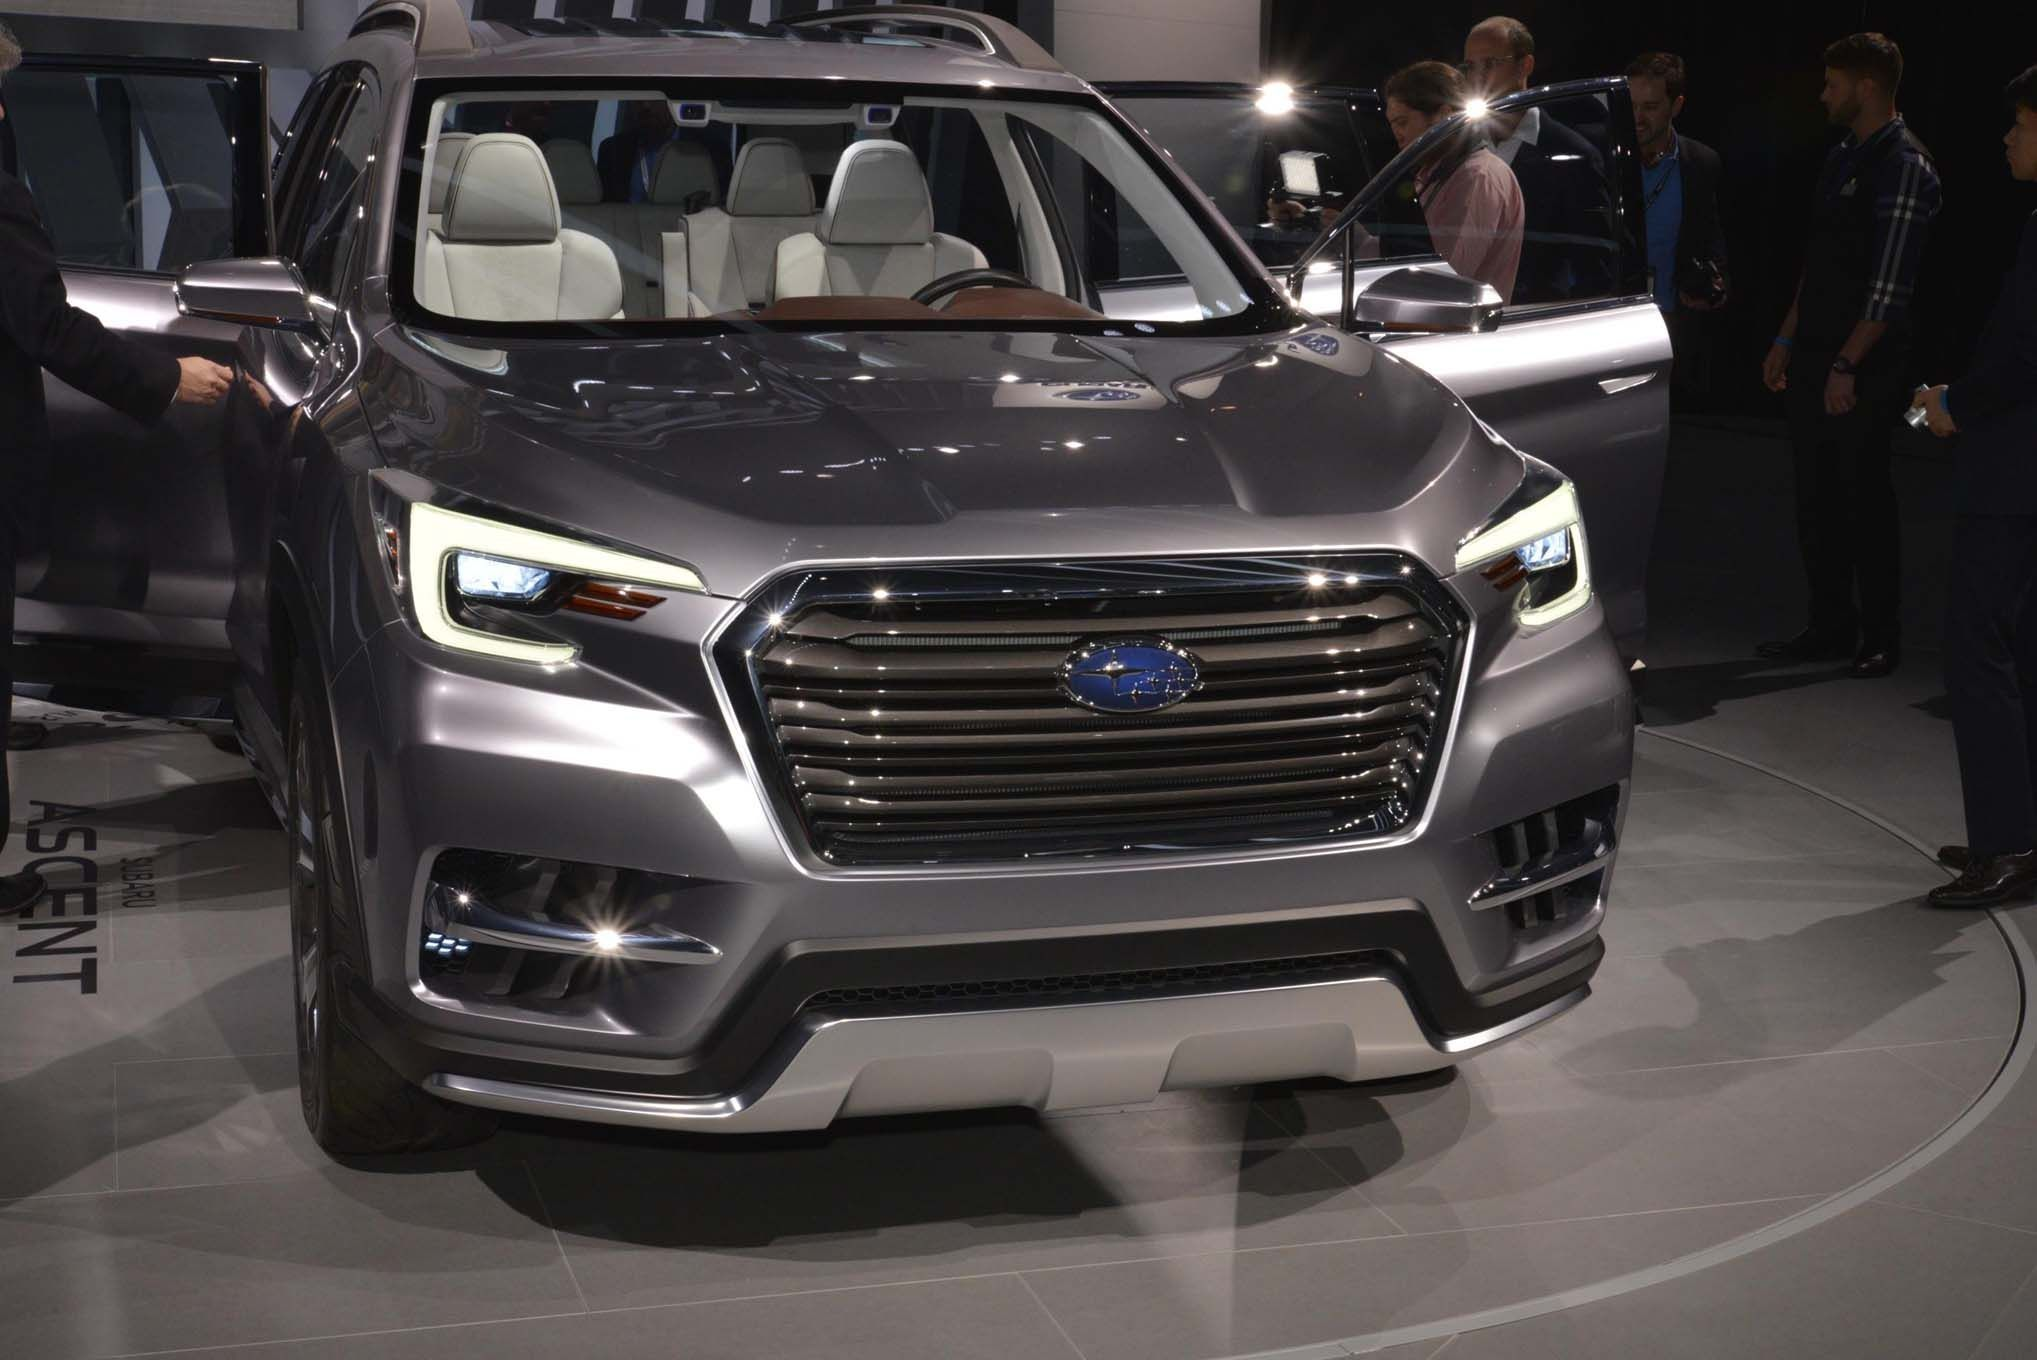 2019 Subaru Forester Exterior and Interior Review | Car ...